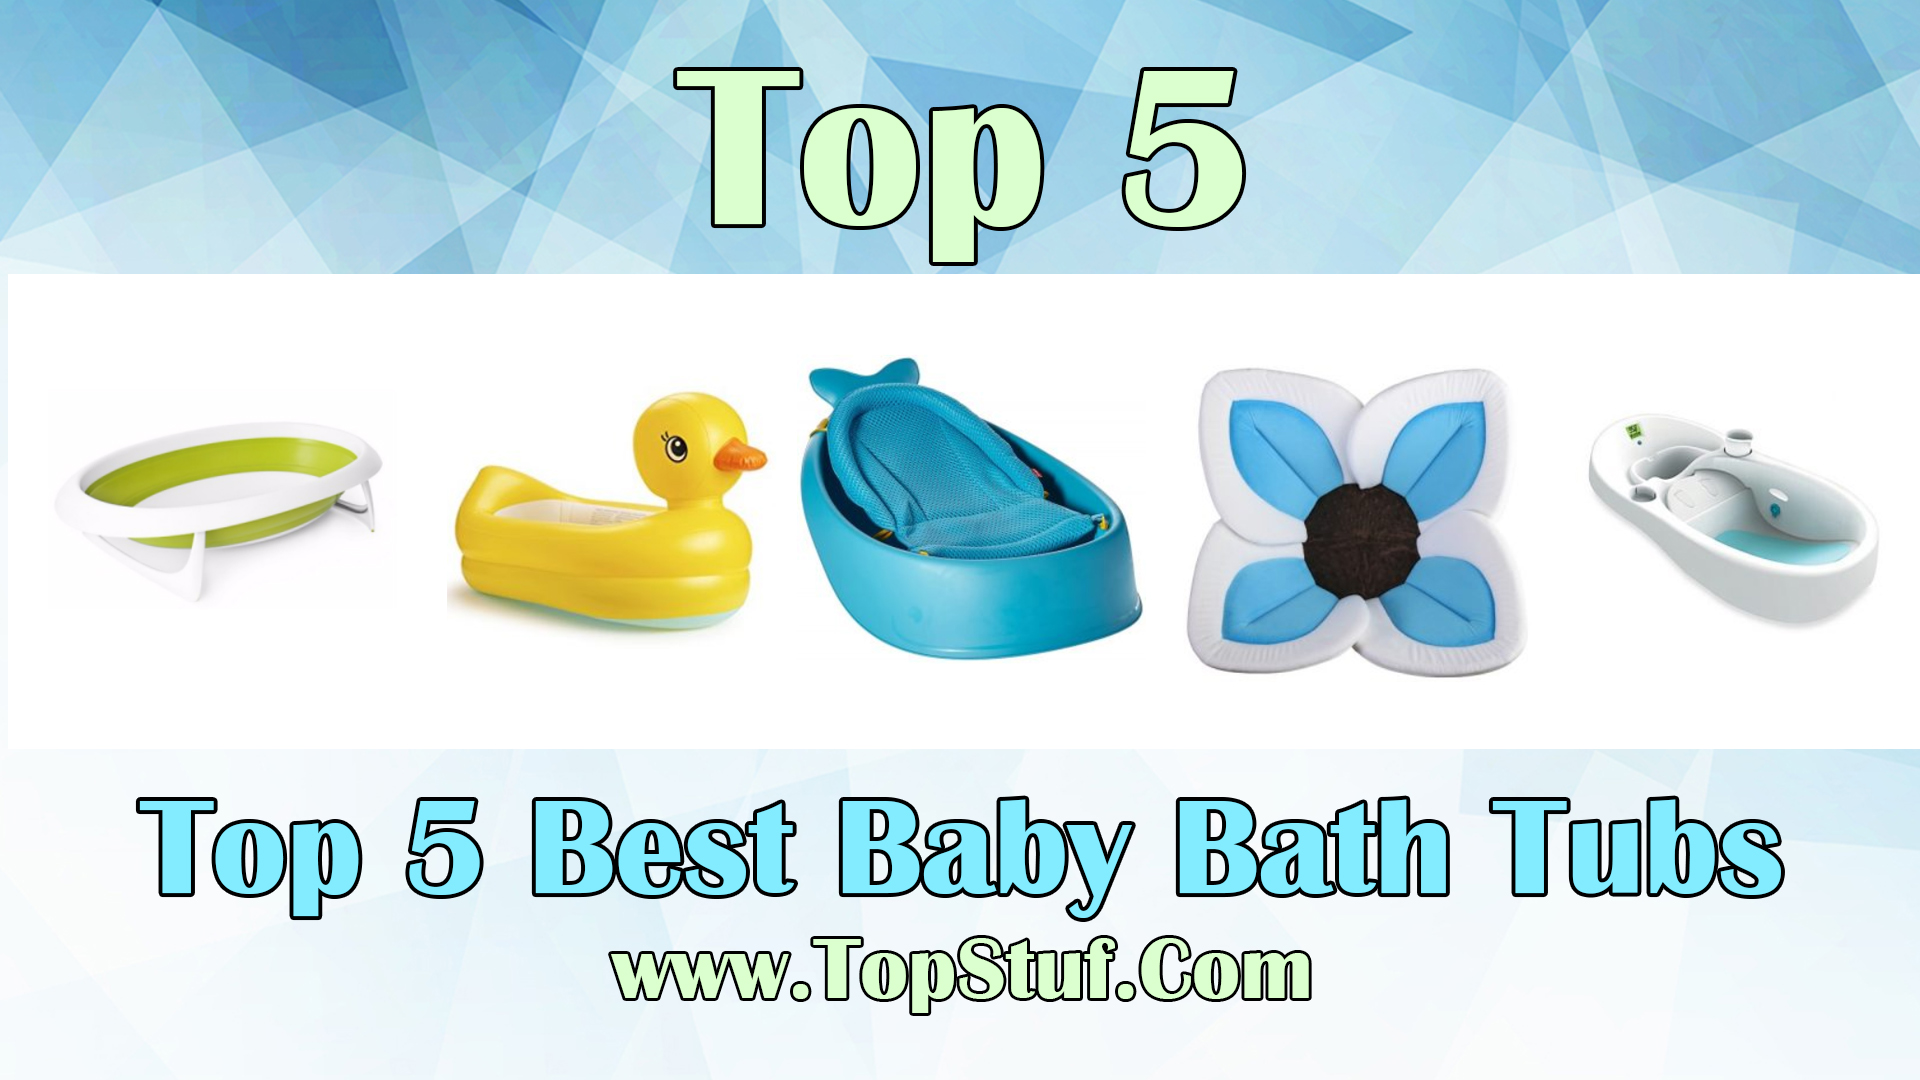 Top 5 Best Baby Bath Tubs - Perfect Gift For Your Kids